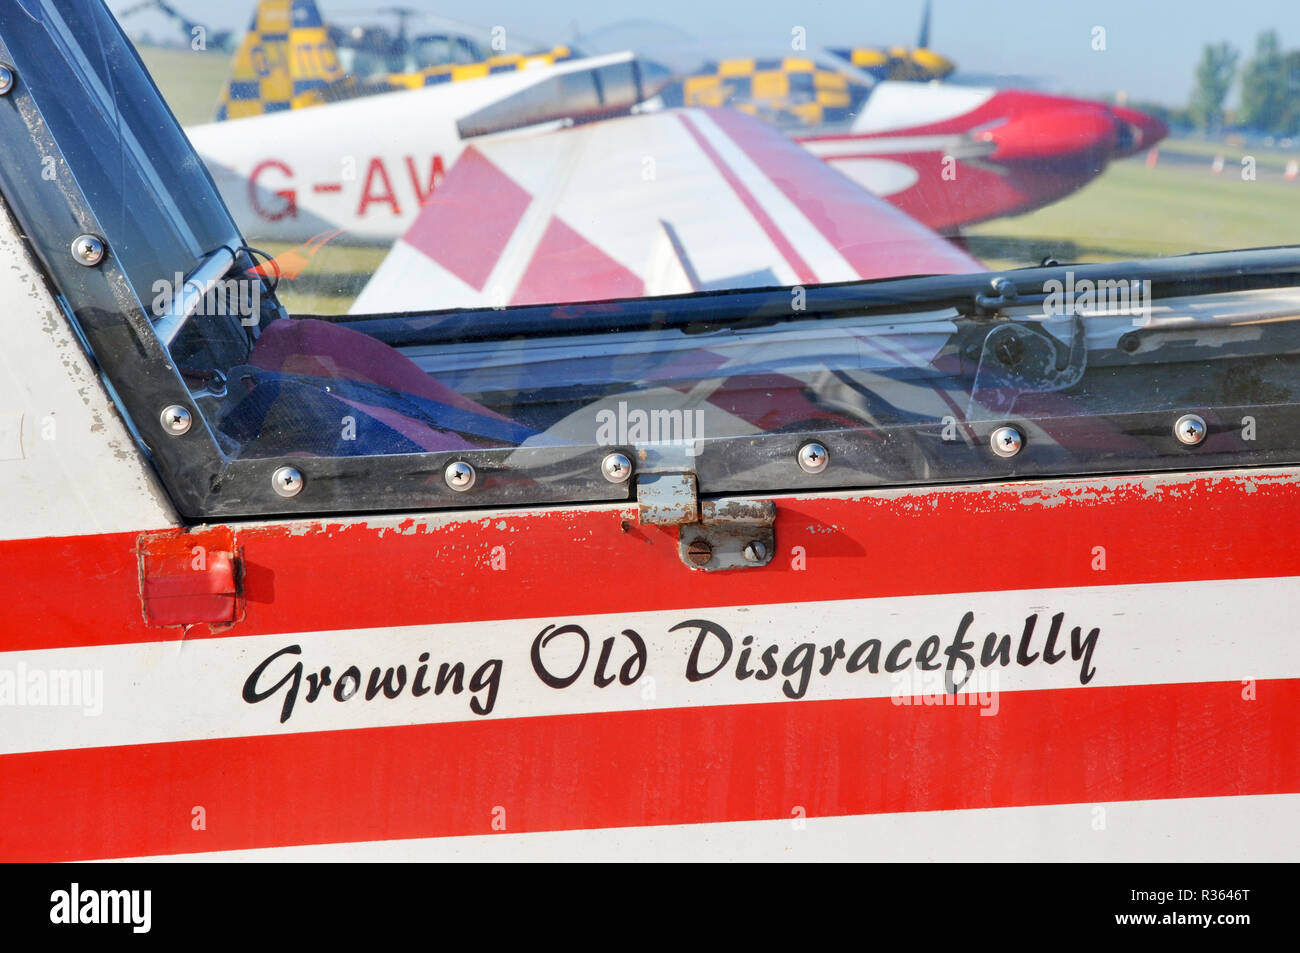 Fournier RF-4D powered glider, motor glider plane ready to display at an airshow. Owned and flown by Bob Grimstead, Growing Old Disgracefully - Stock Image